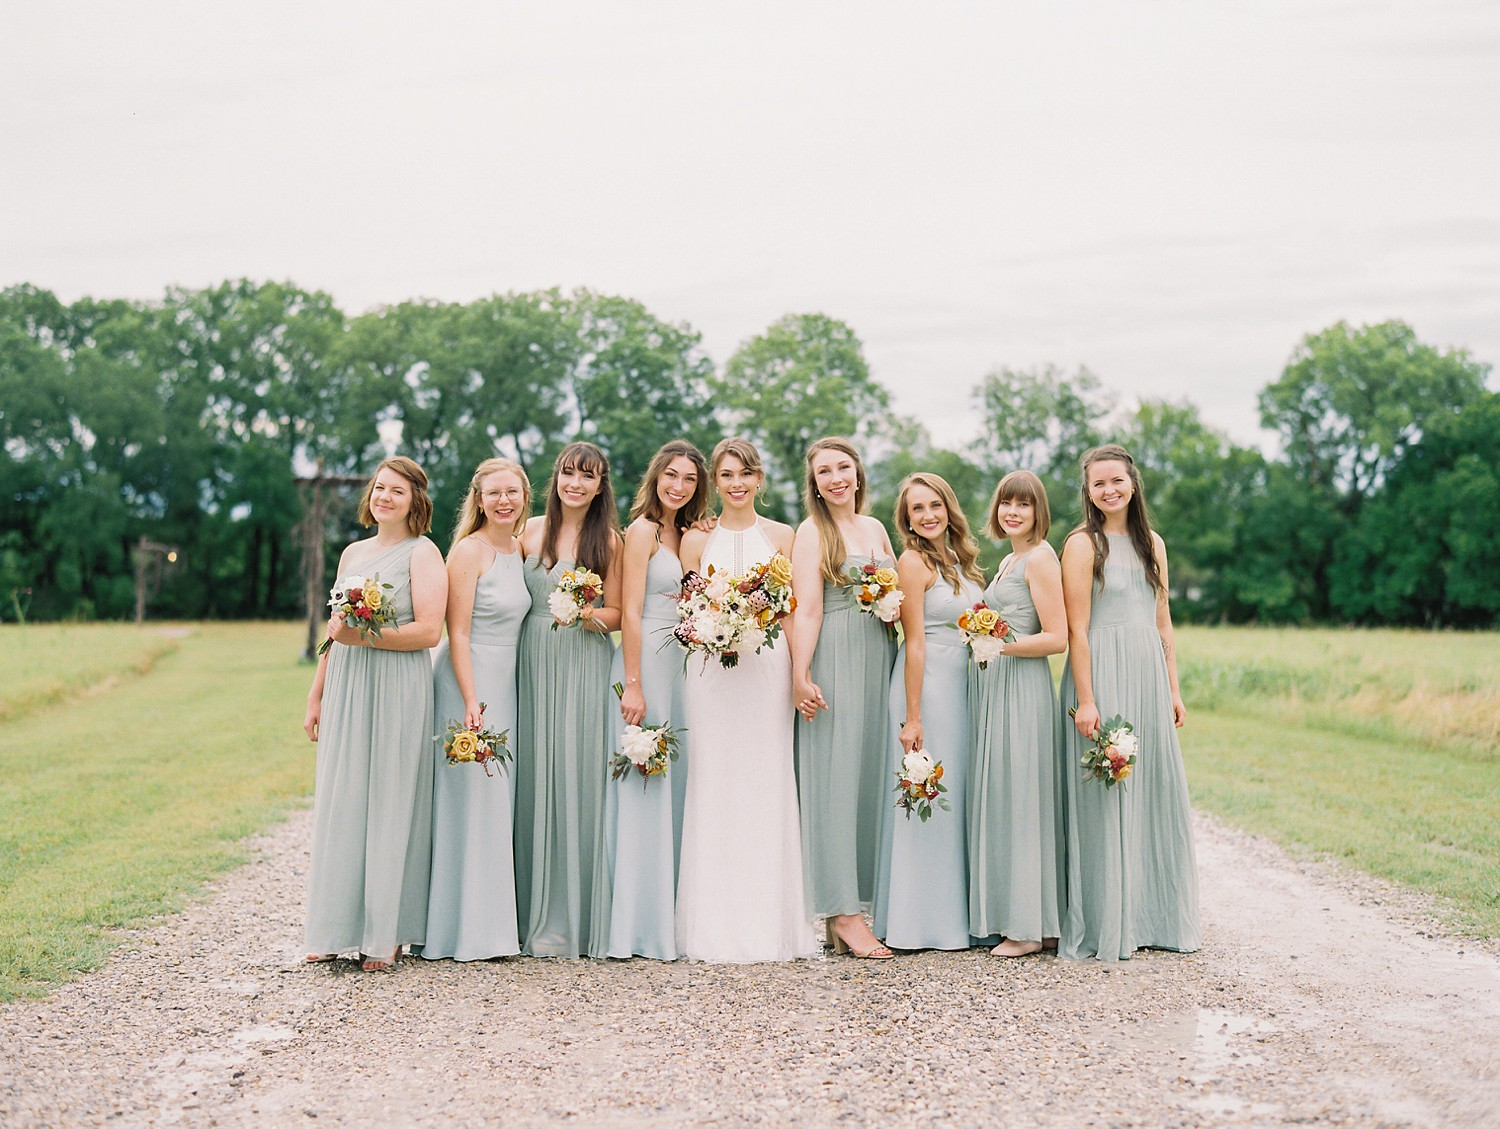 Summer Wedding Inspiration, Blue Bridesmaids Dresses | Wedding Gift | Something Old | | Summer Wedding Inspiration | Fort Worth Wedding Photographer | The Brooks at Weatherford